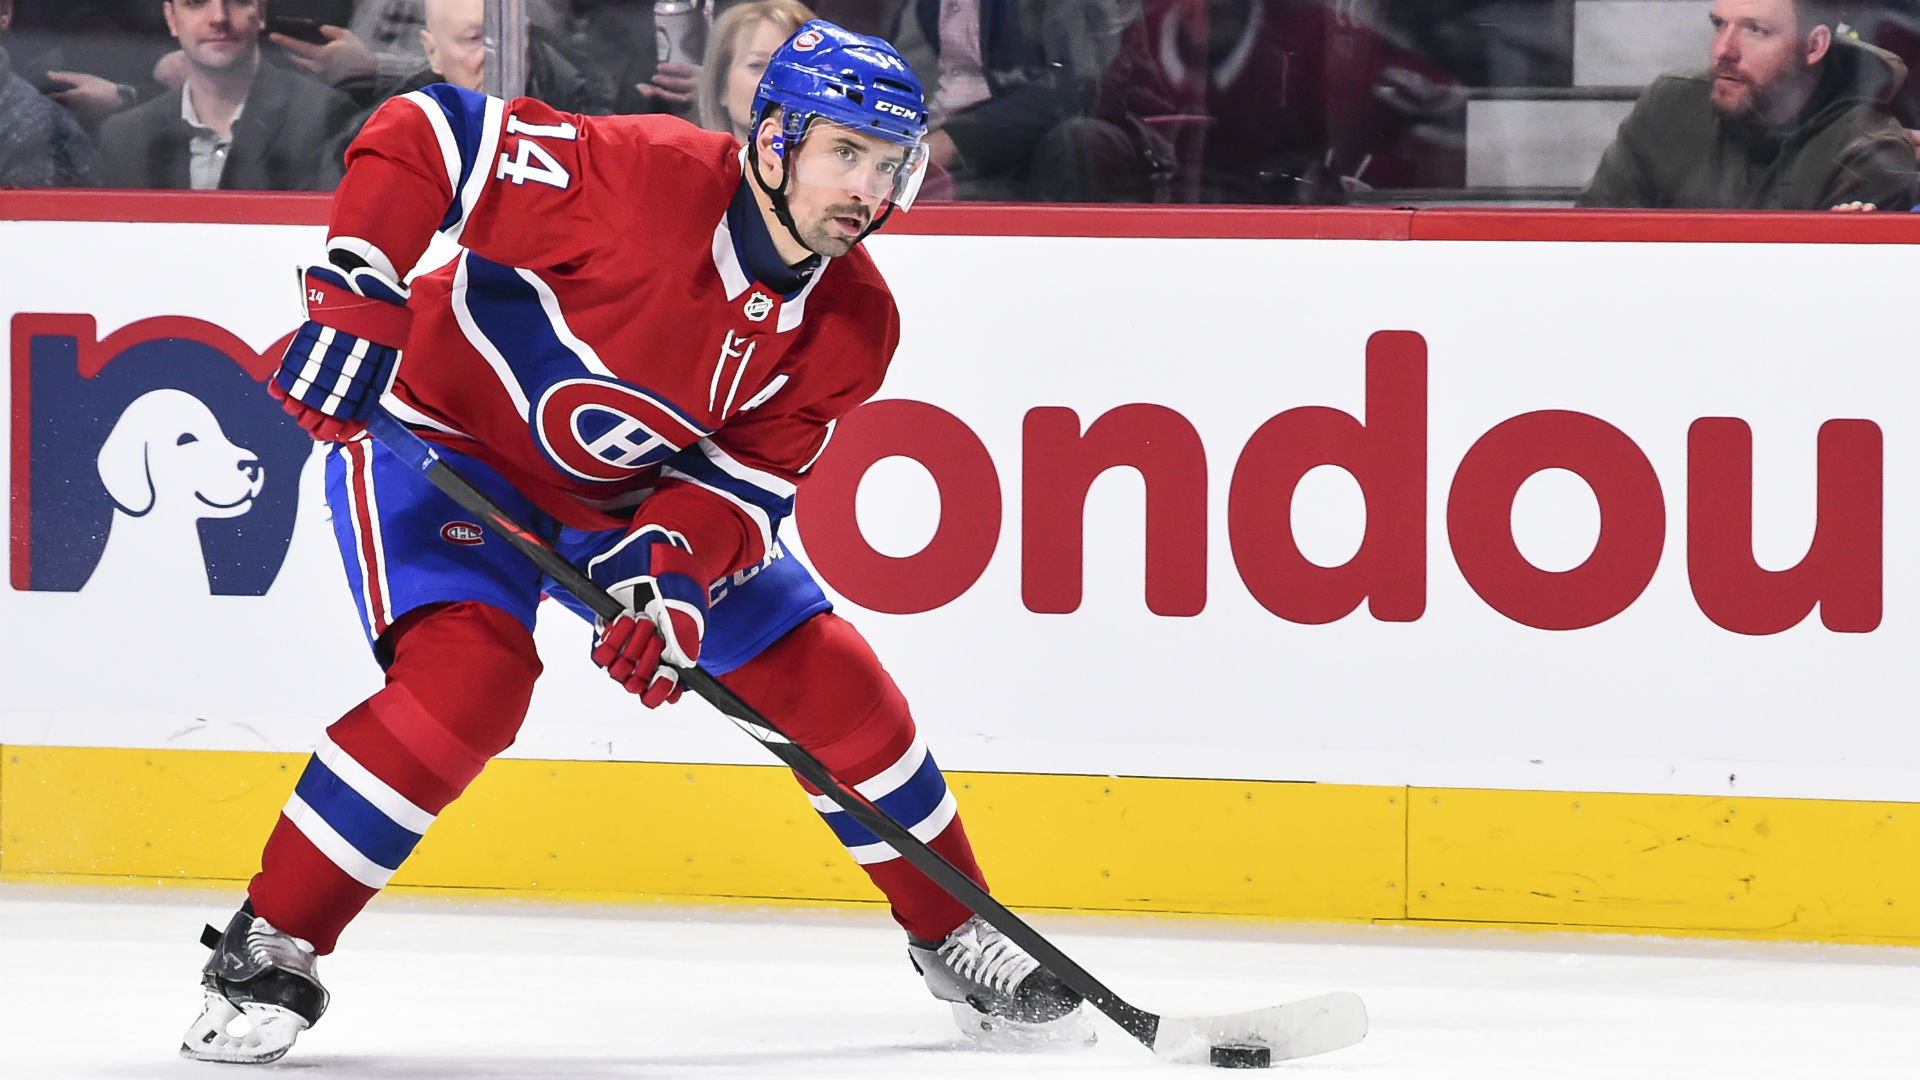 Montreal Canadiens Trade Tomas Plekanec To